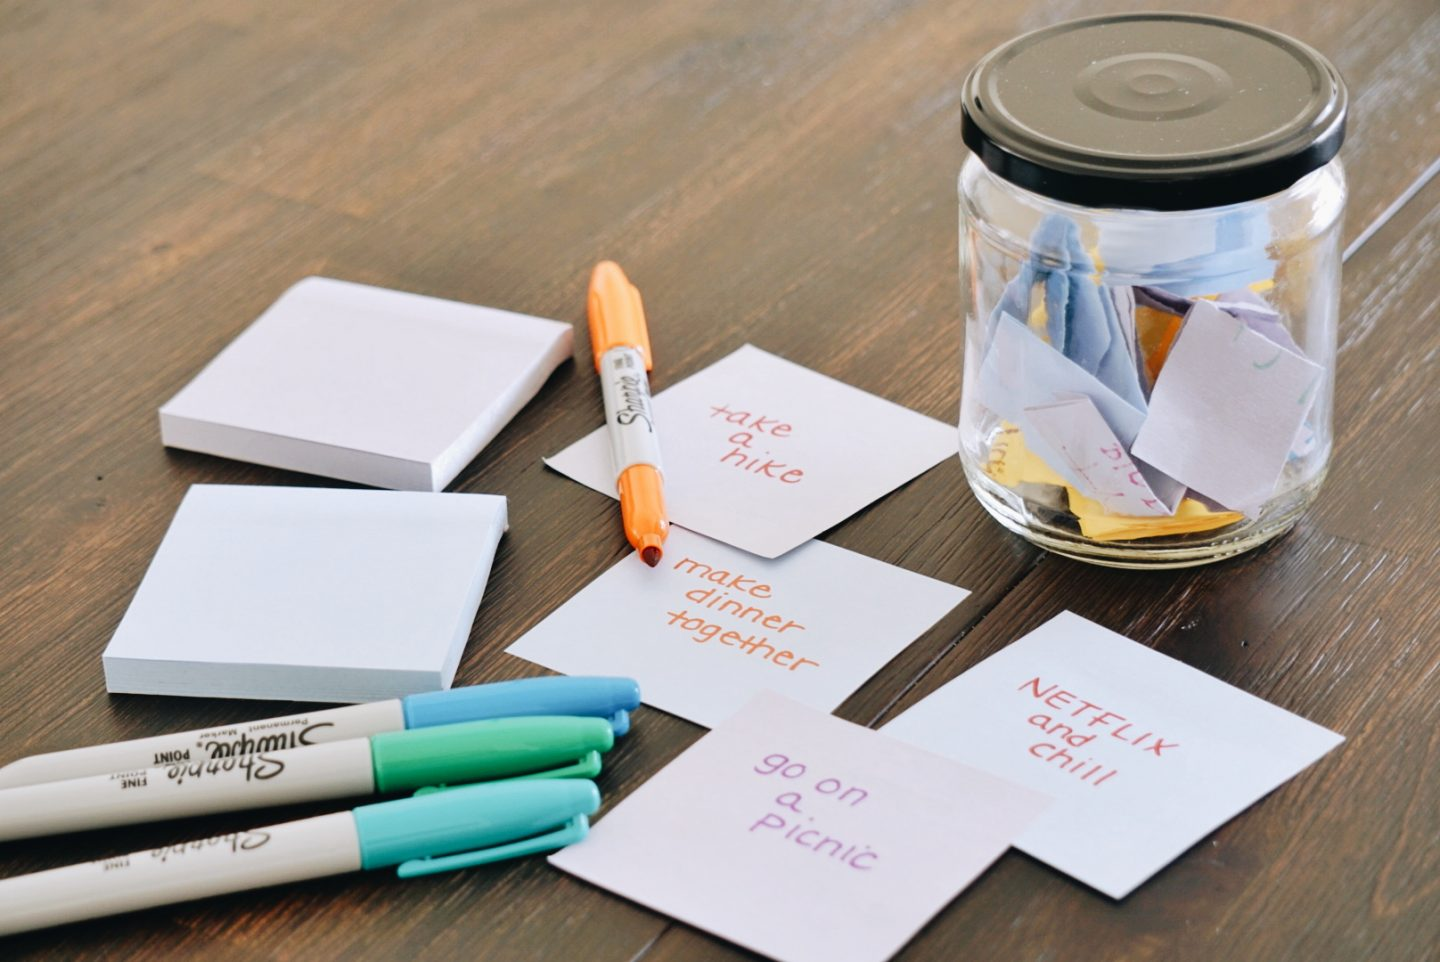 date night in a jar diy project for married couples